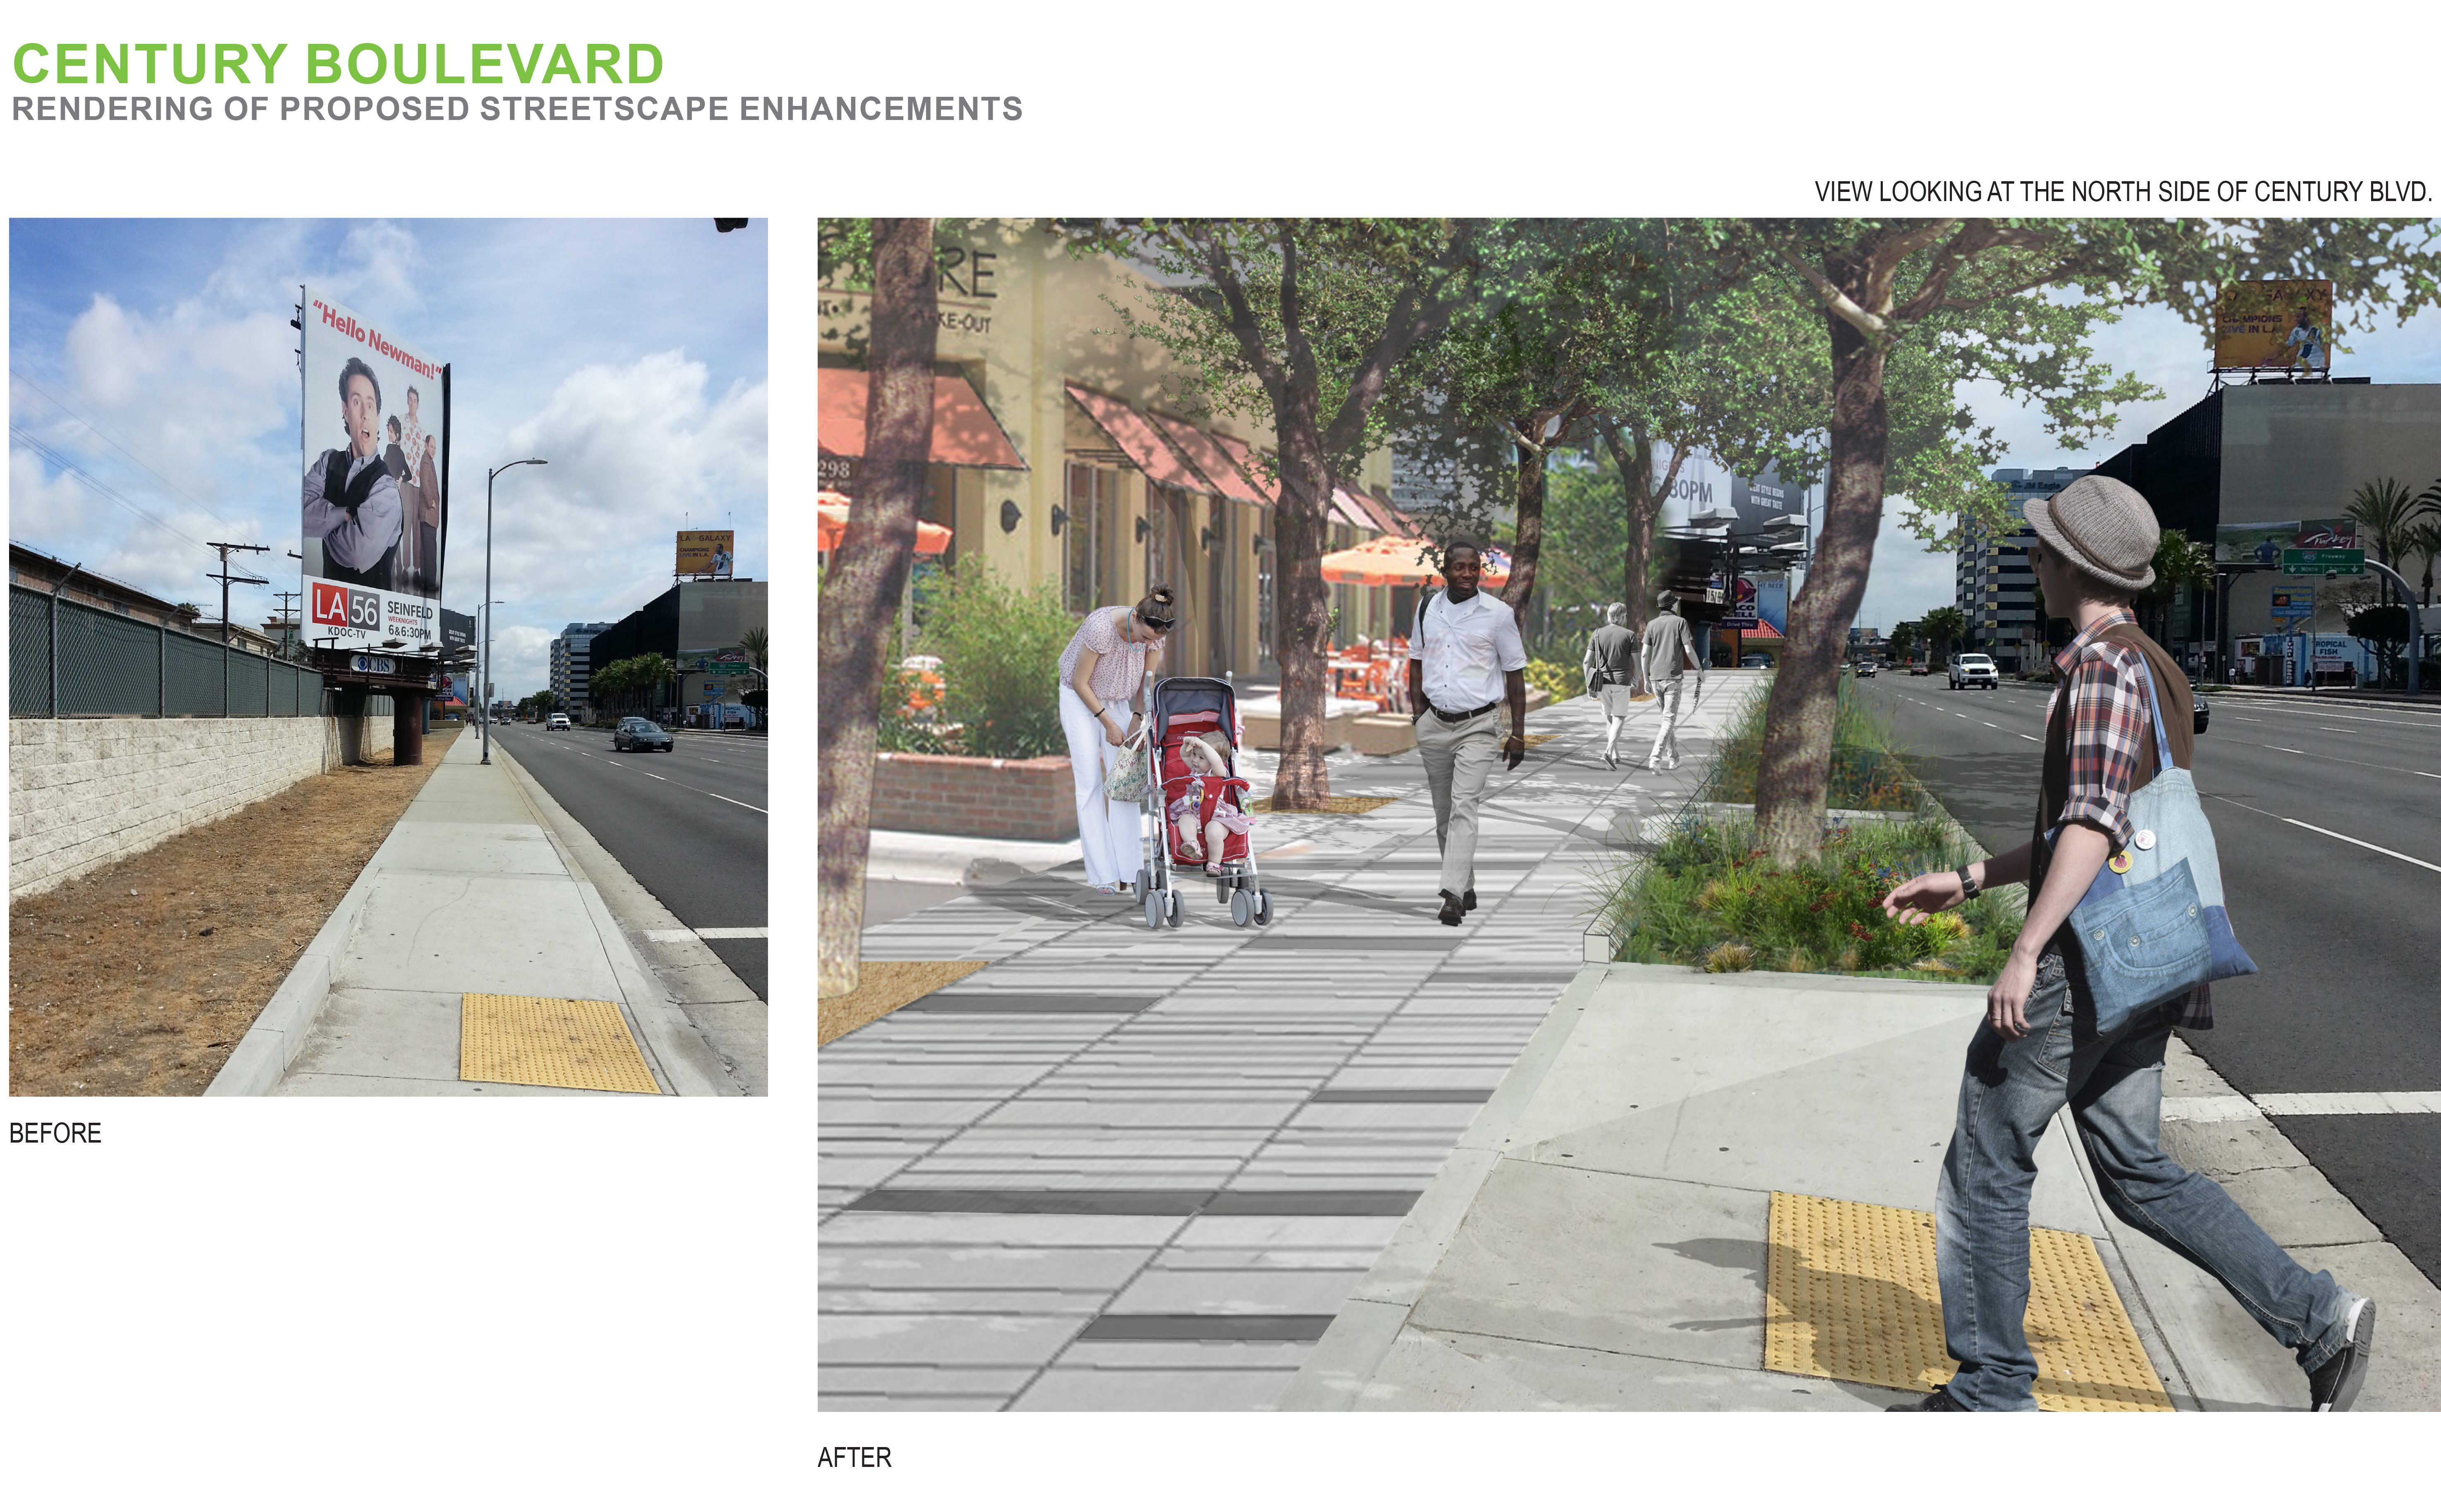 streetscape_plan_document_final_05_21_2018-BEFORE AFTER-1